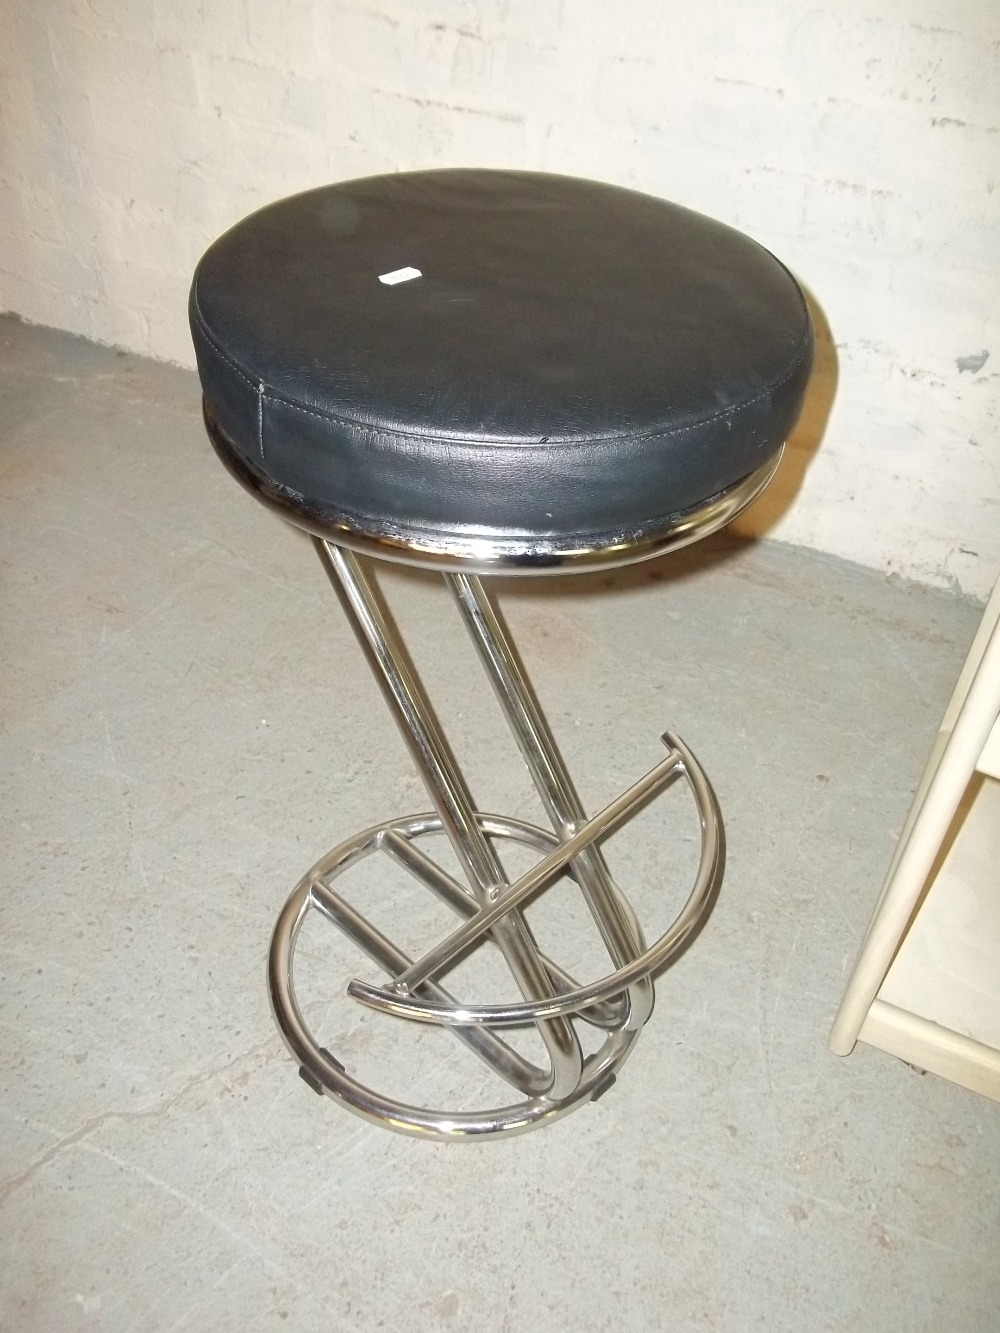 THREE MODERN ITEMS TO INCLUDE A TUB CHAIR, A CHROME STOOL AND A SERVING TROLLEY - Image 2 of 4